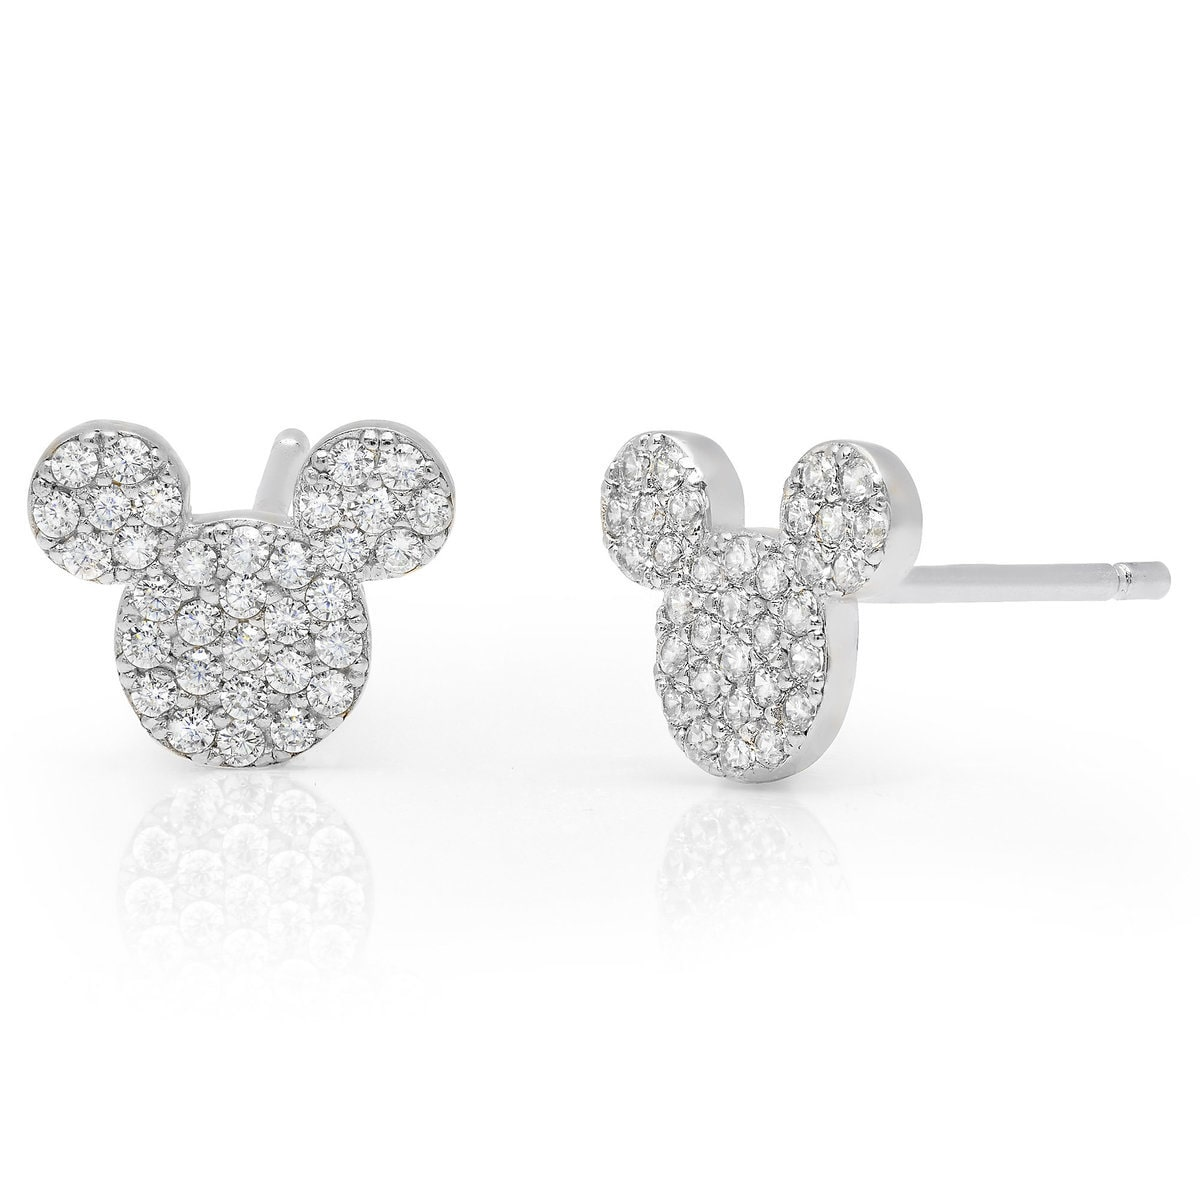 diamonds tiffany small hei constrain jewelry fmt earrings fit in platinum jewellery wid ed victoria id with